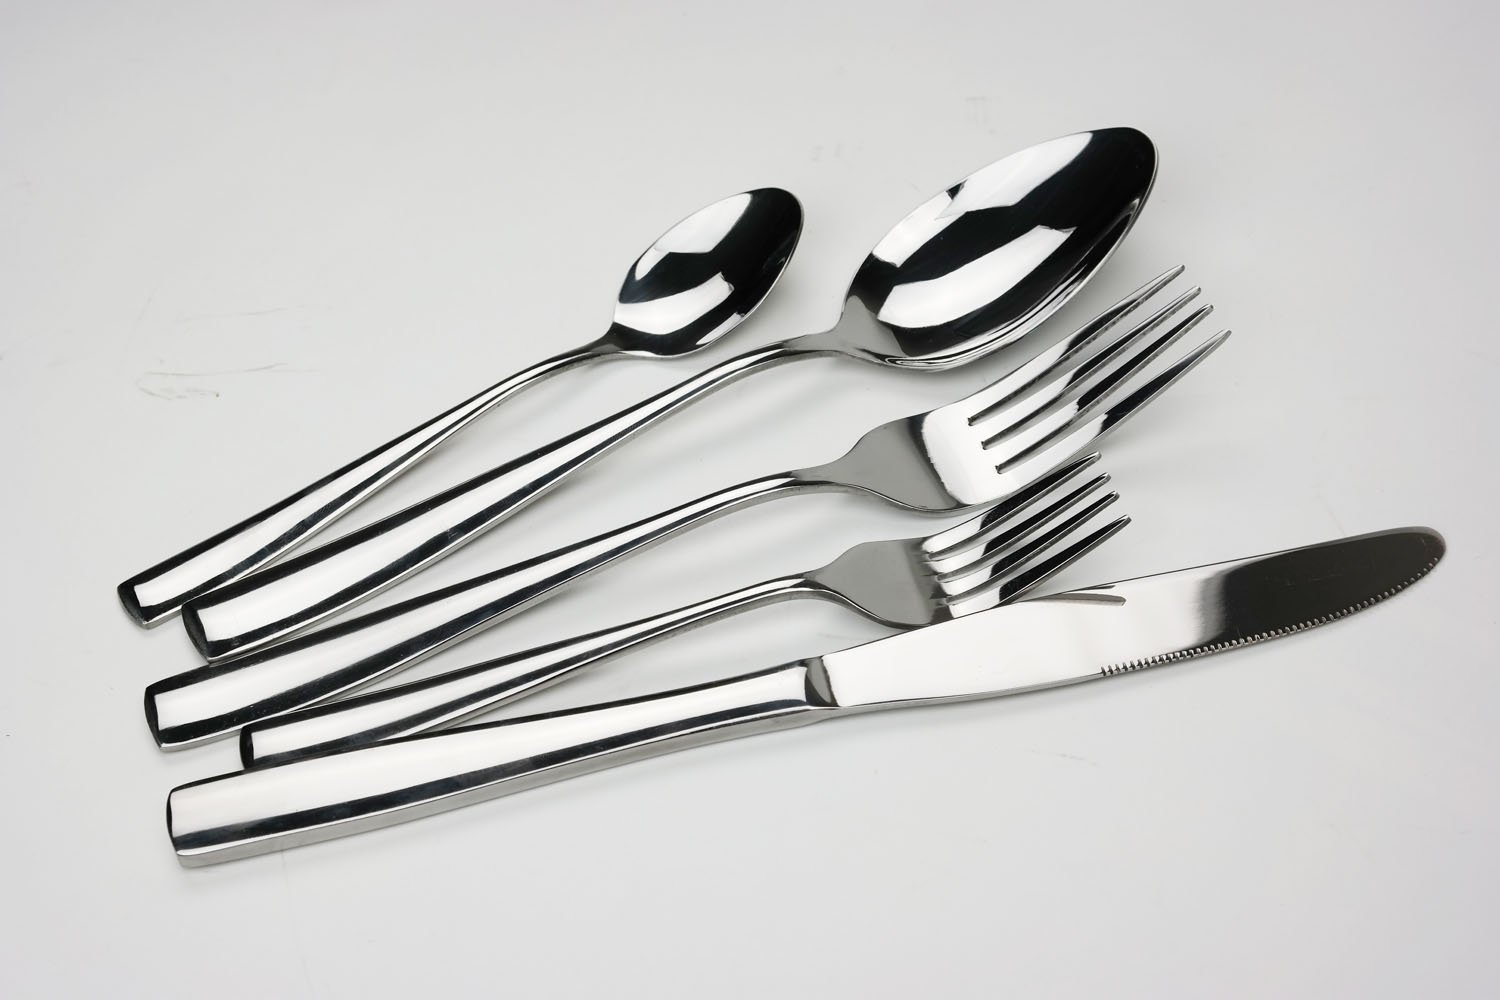 Dinner Utensils | Discount Kitchenware Items | Under $50 Gift Ideas For People Who Love To Cook